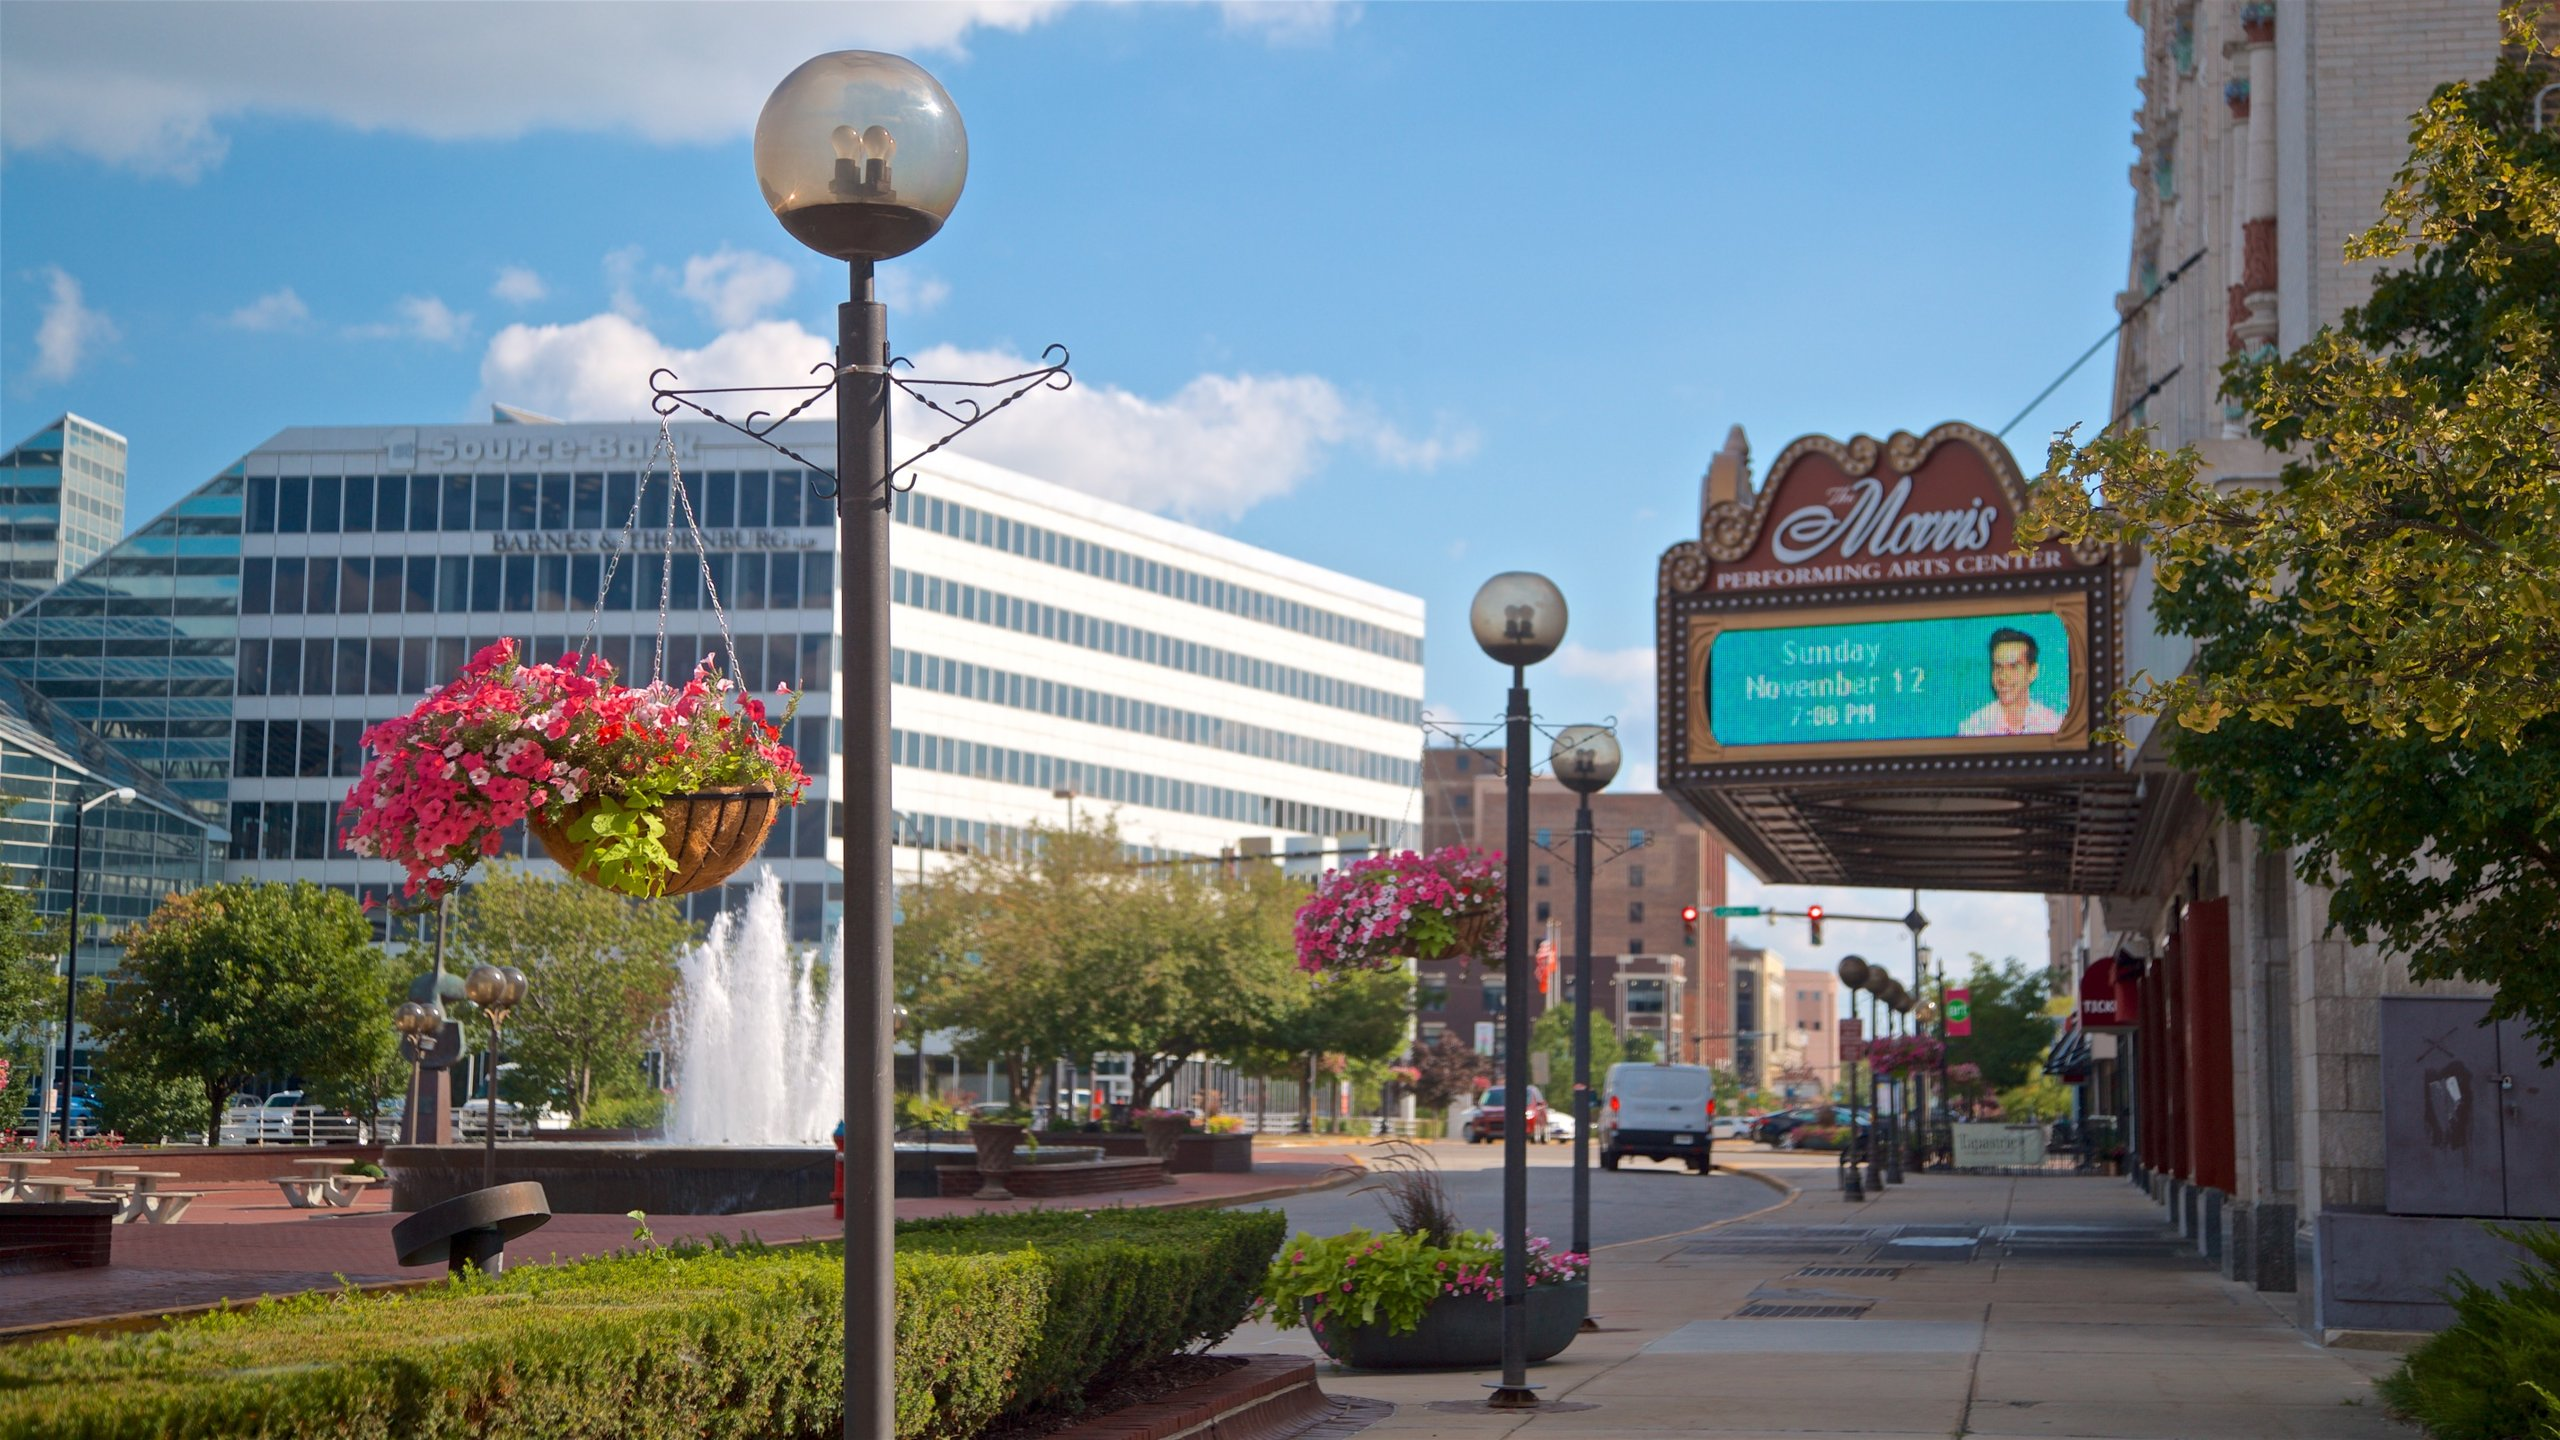 South Bend, Indiana, United States of America